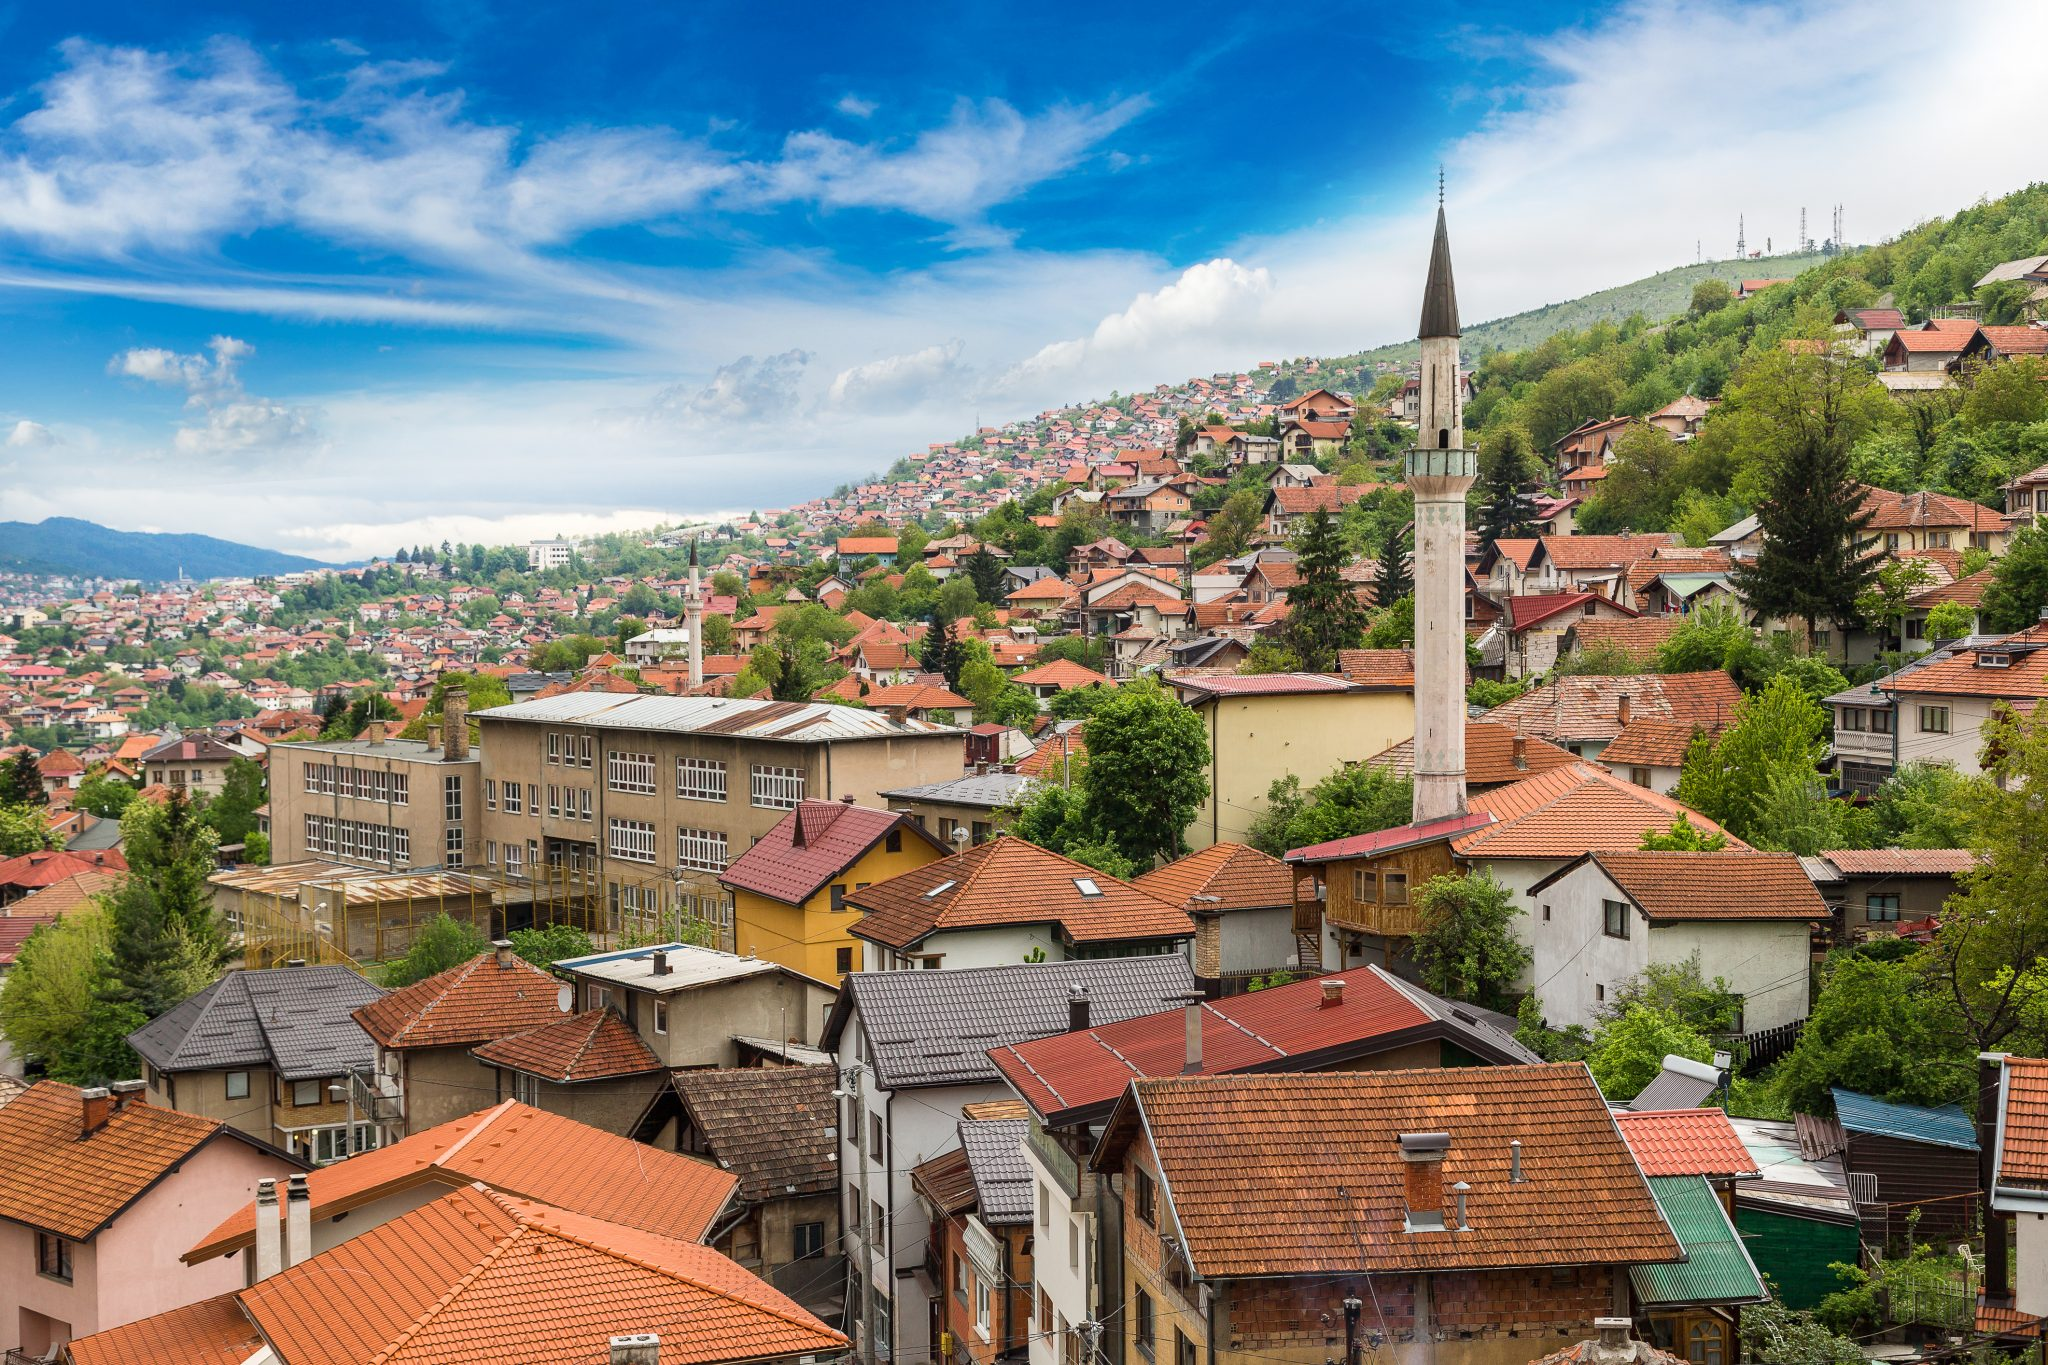 view of sarajevo bosnia and herzegovina skyline on a sunny day with a minaret prominent. old town is packed with some of the best things to do in sarajevo